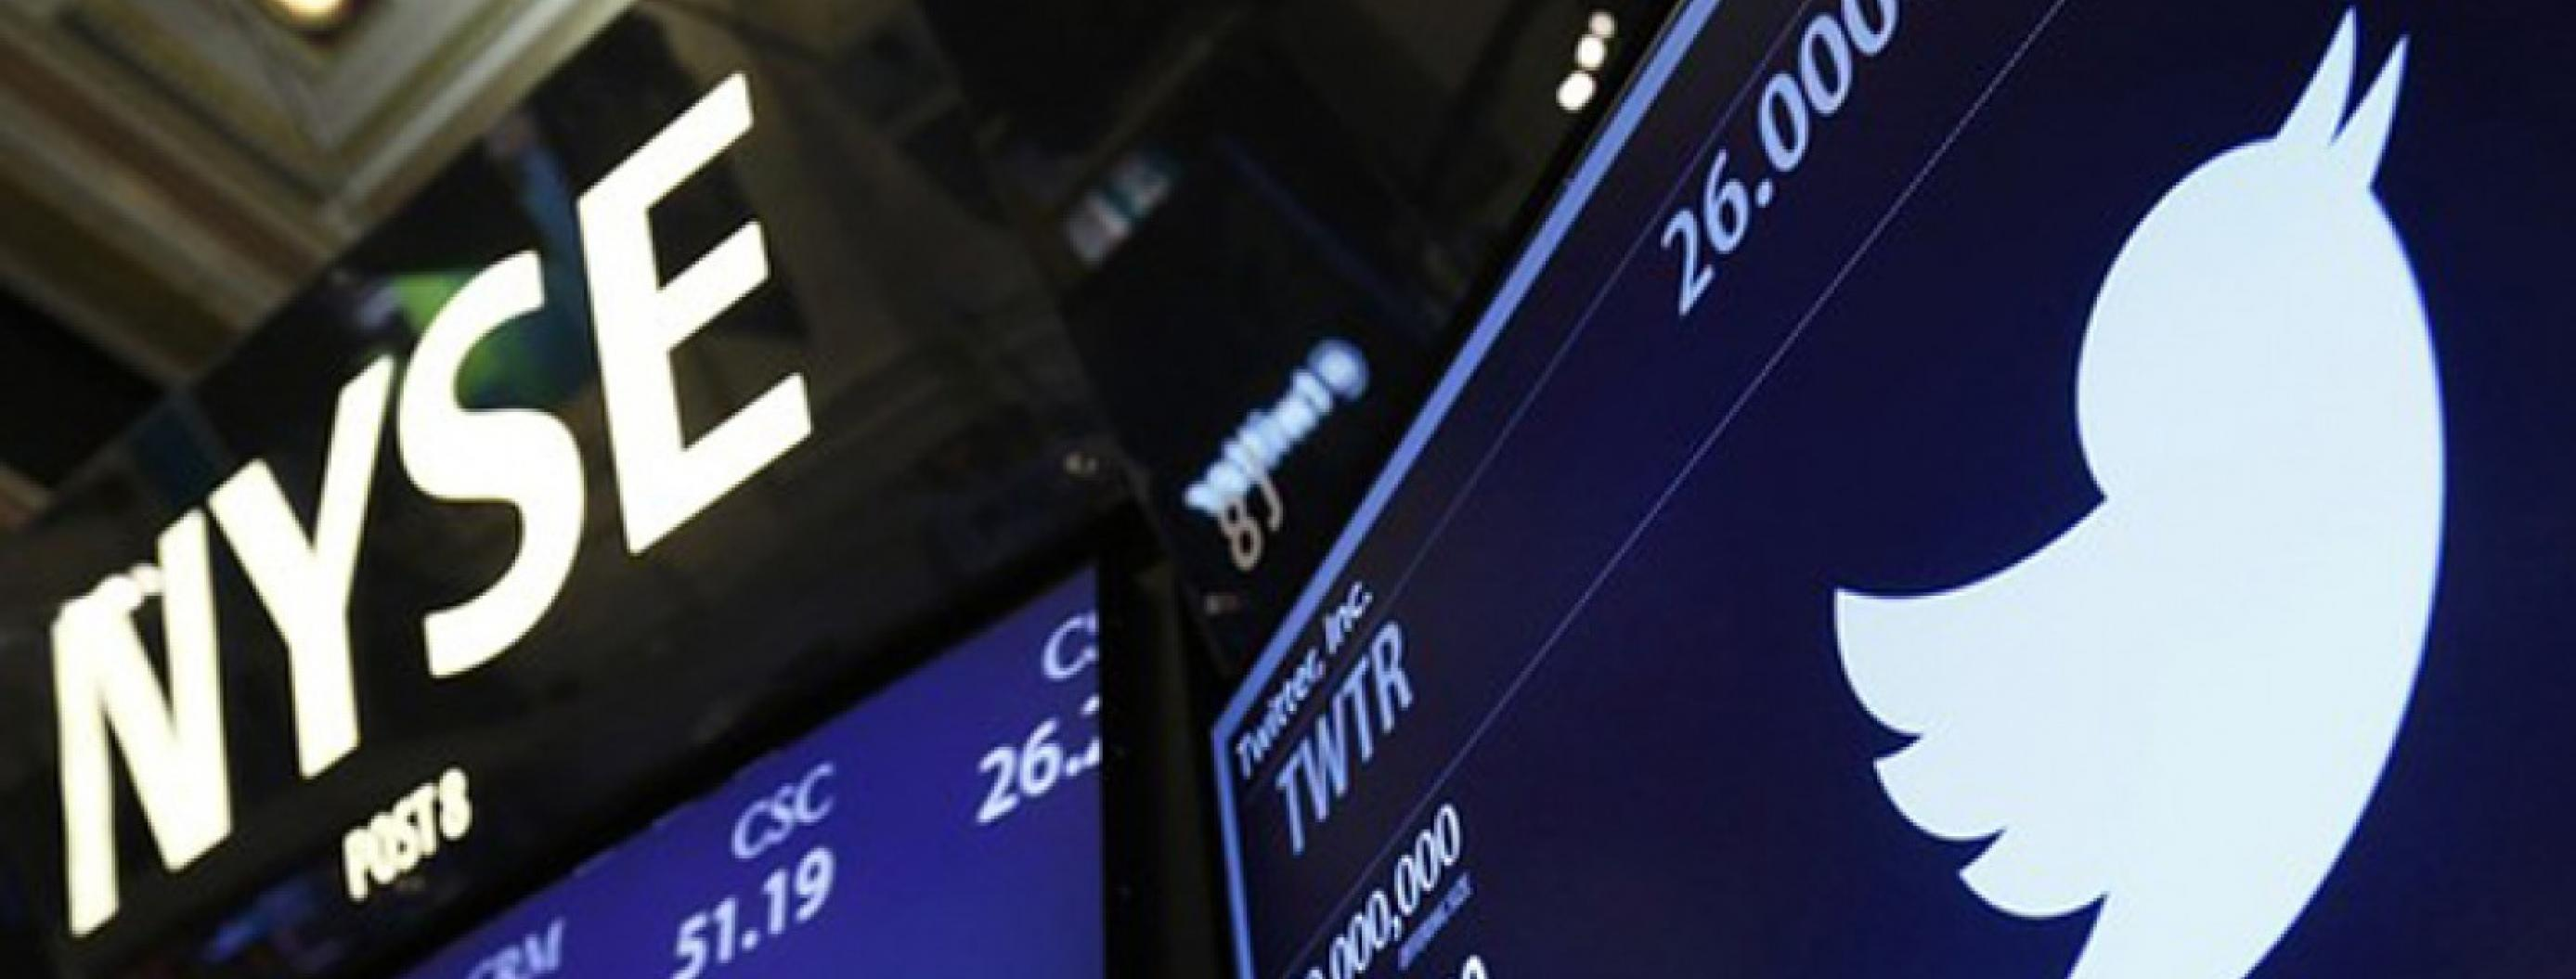 Twitter Stock Went on a Spectacular Run in 2017